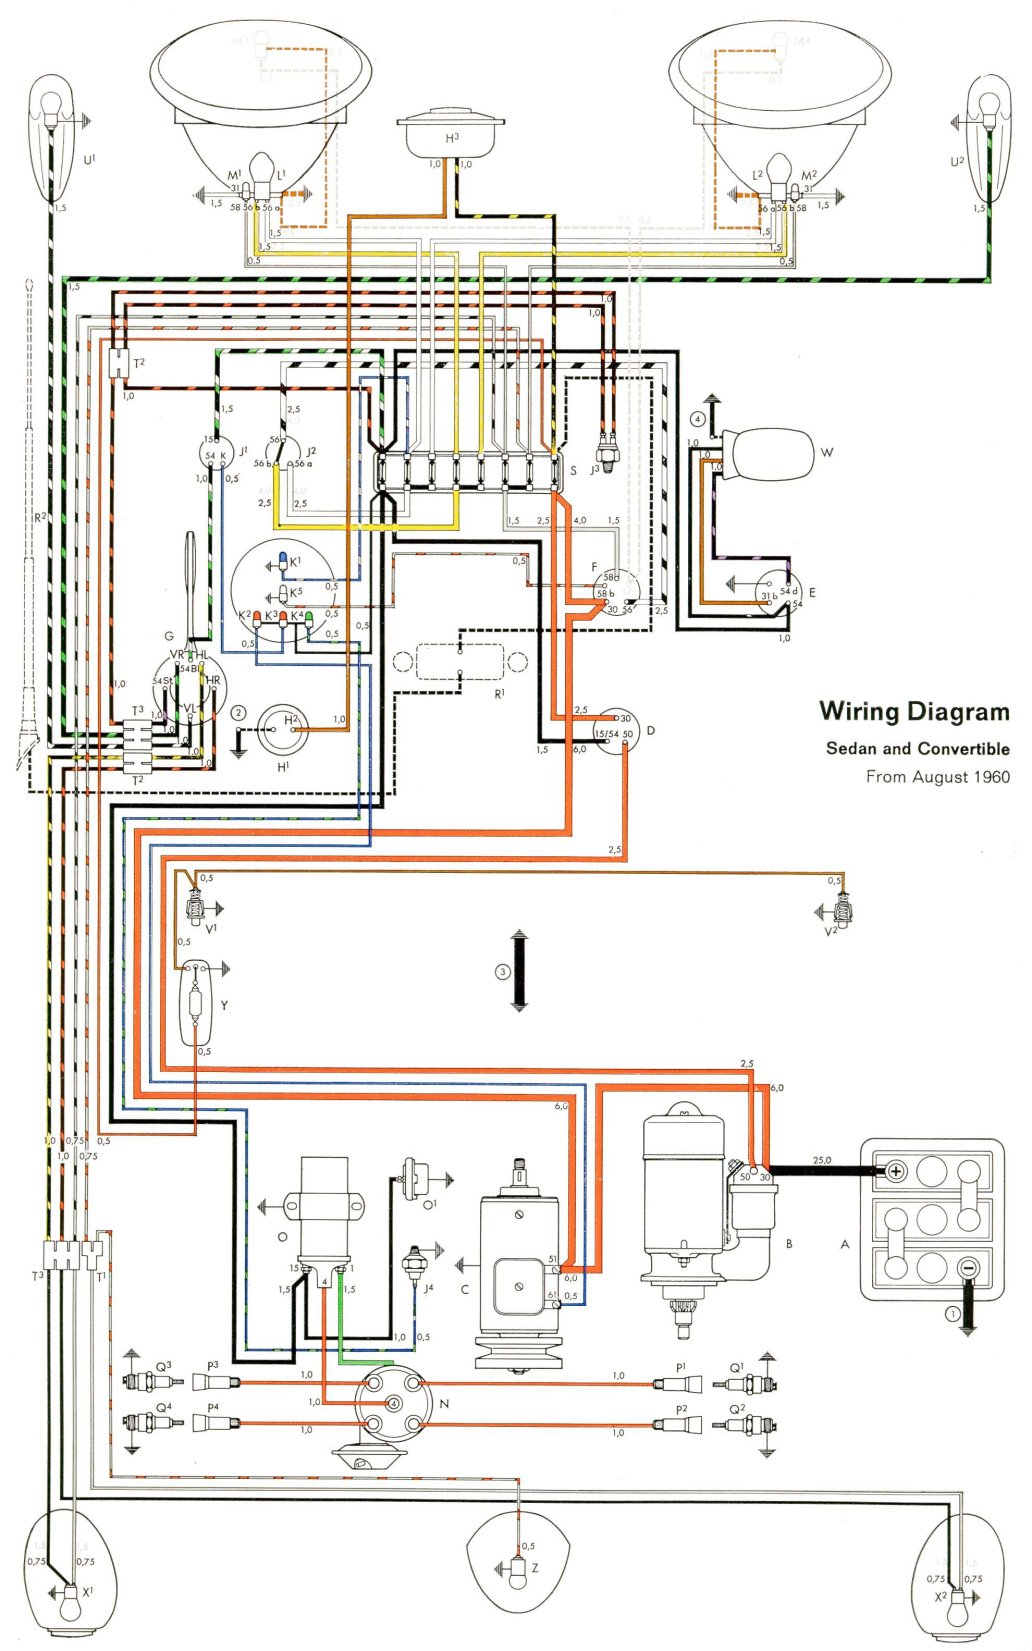 bug_61 1961 beetle wiring diagram thegoldenbug com vw bug wiring diagram at arjmand.co